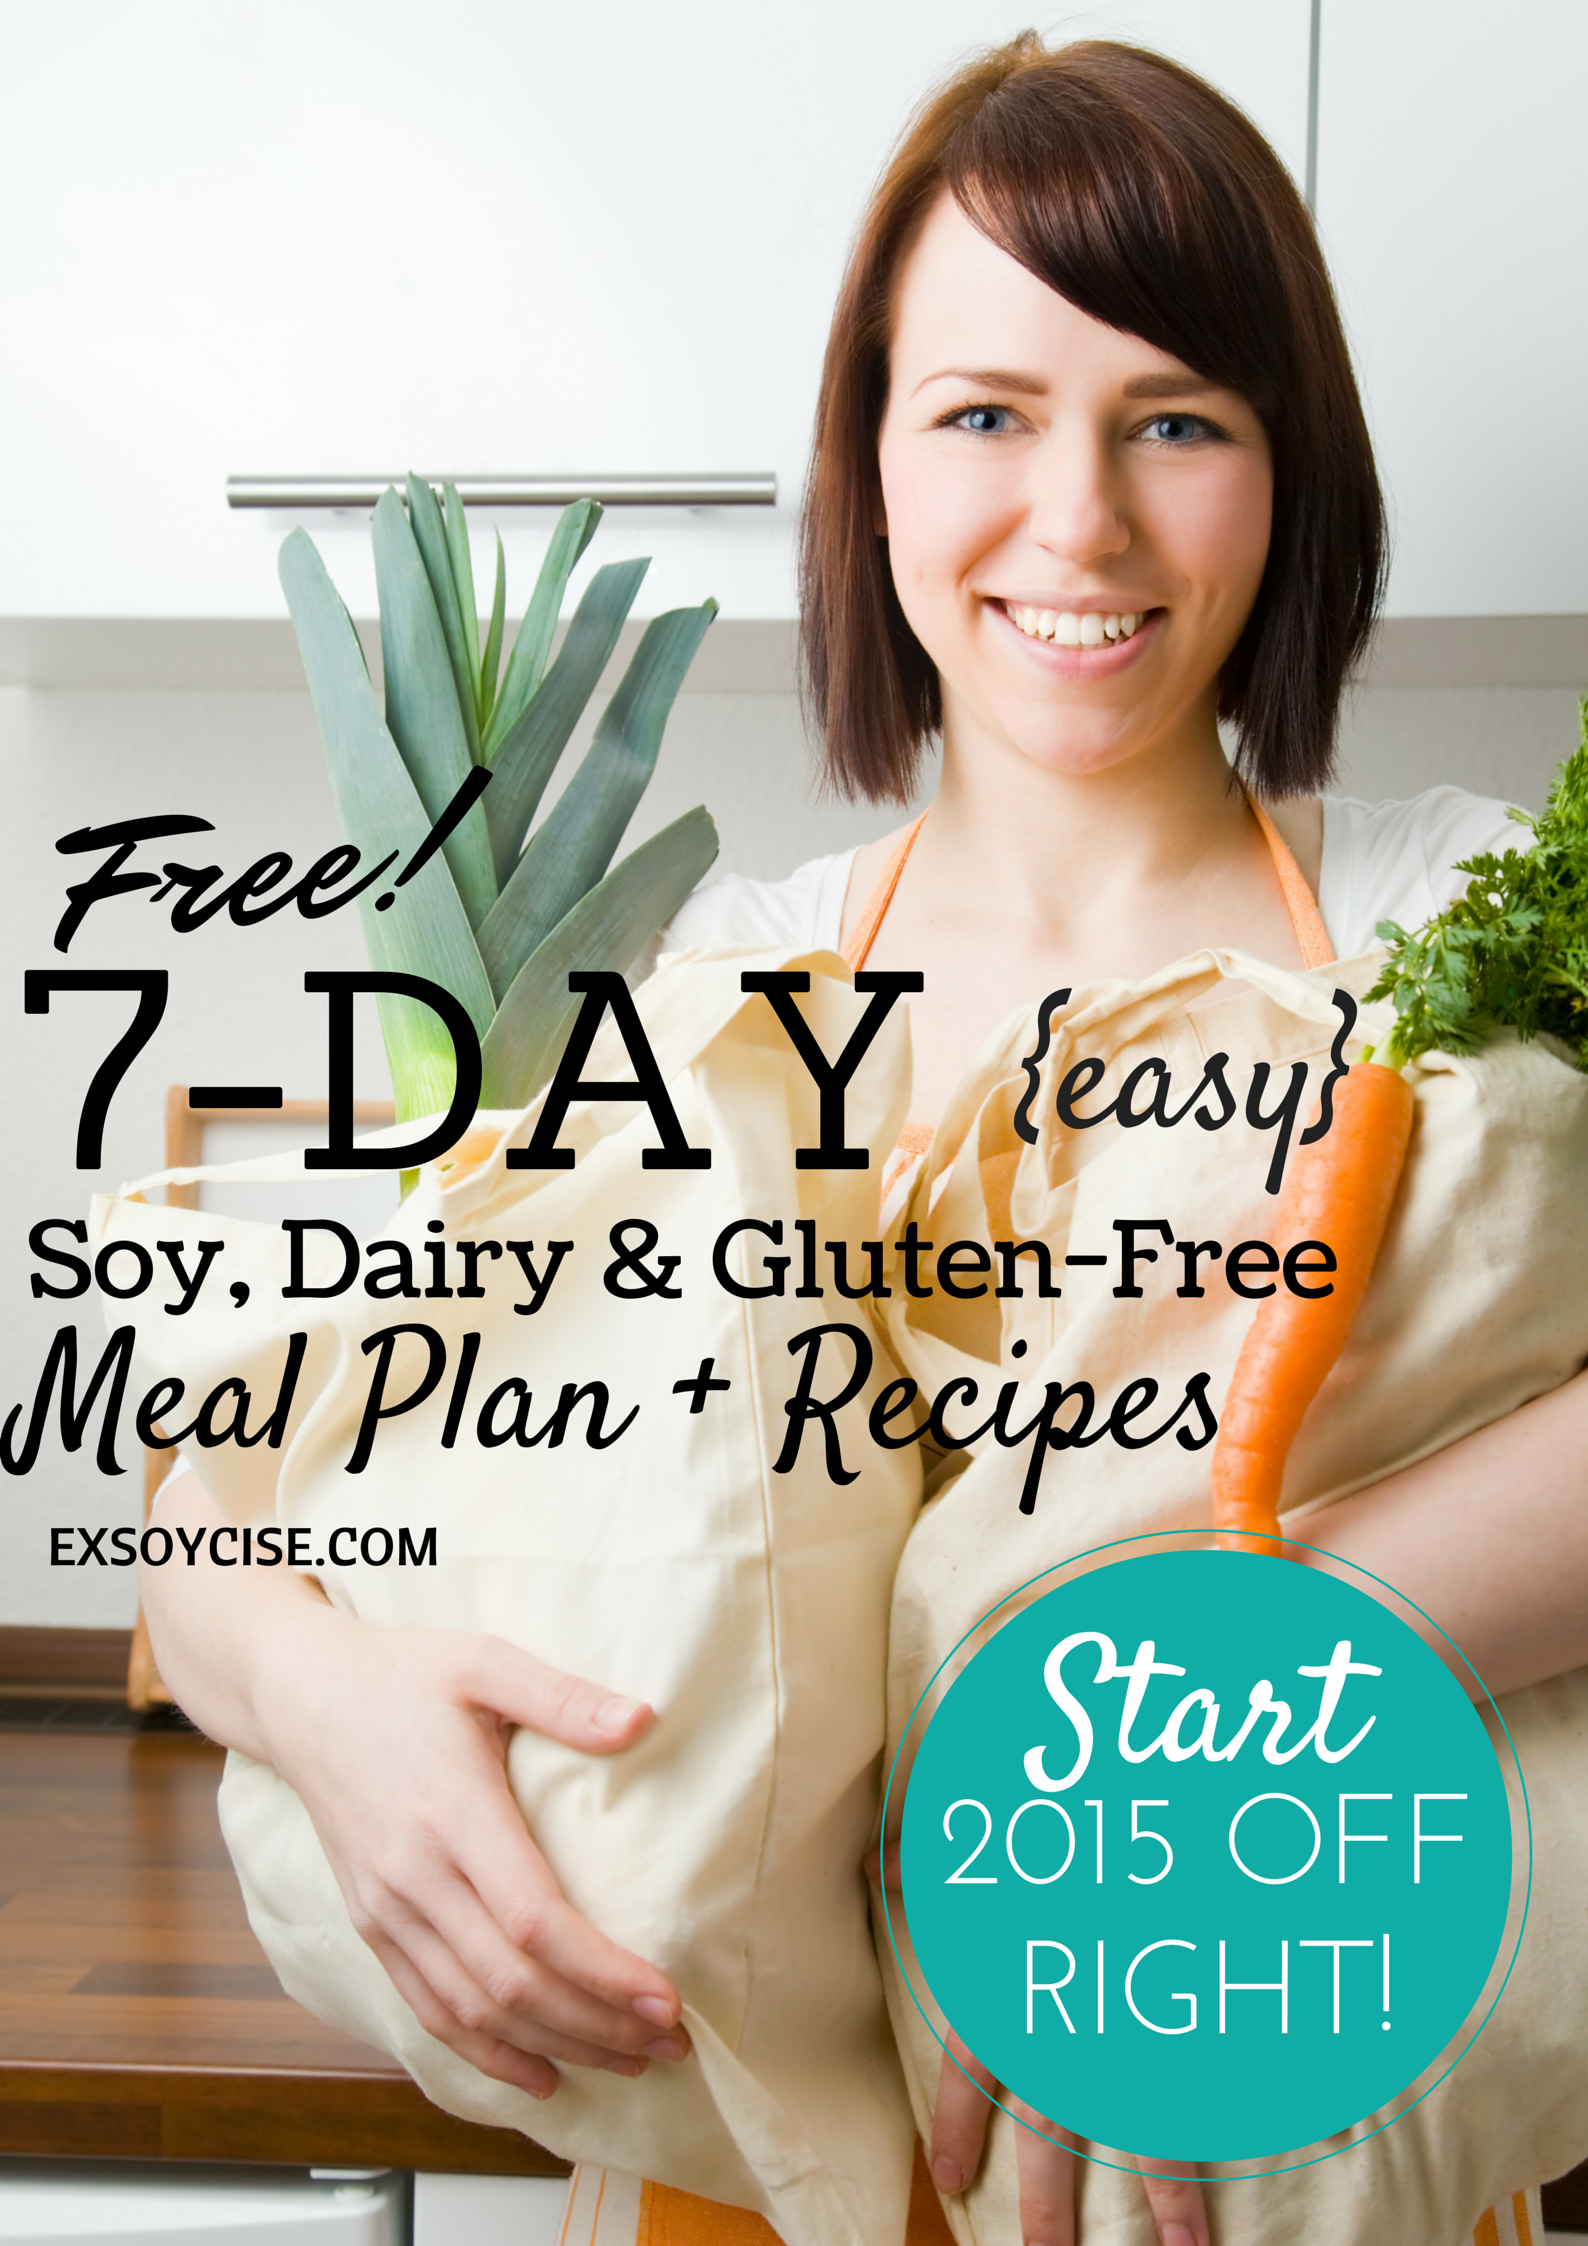 Free 7-day soy, dairy & gluten-free meal plan with recipes